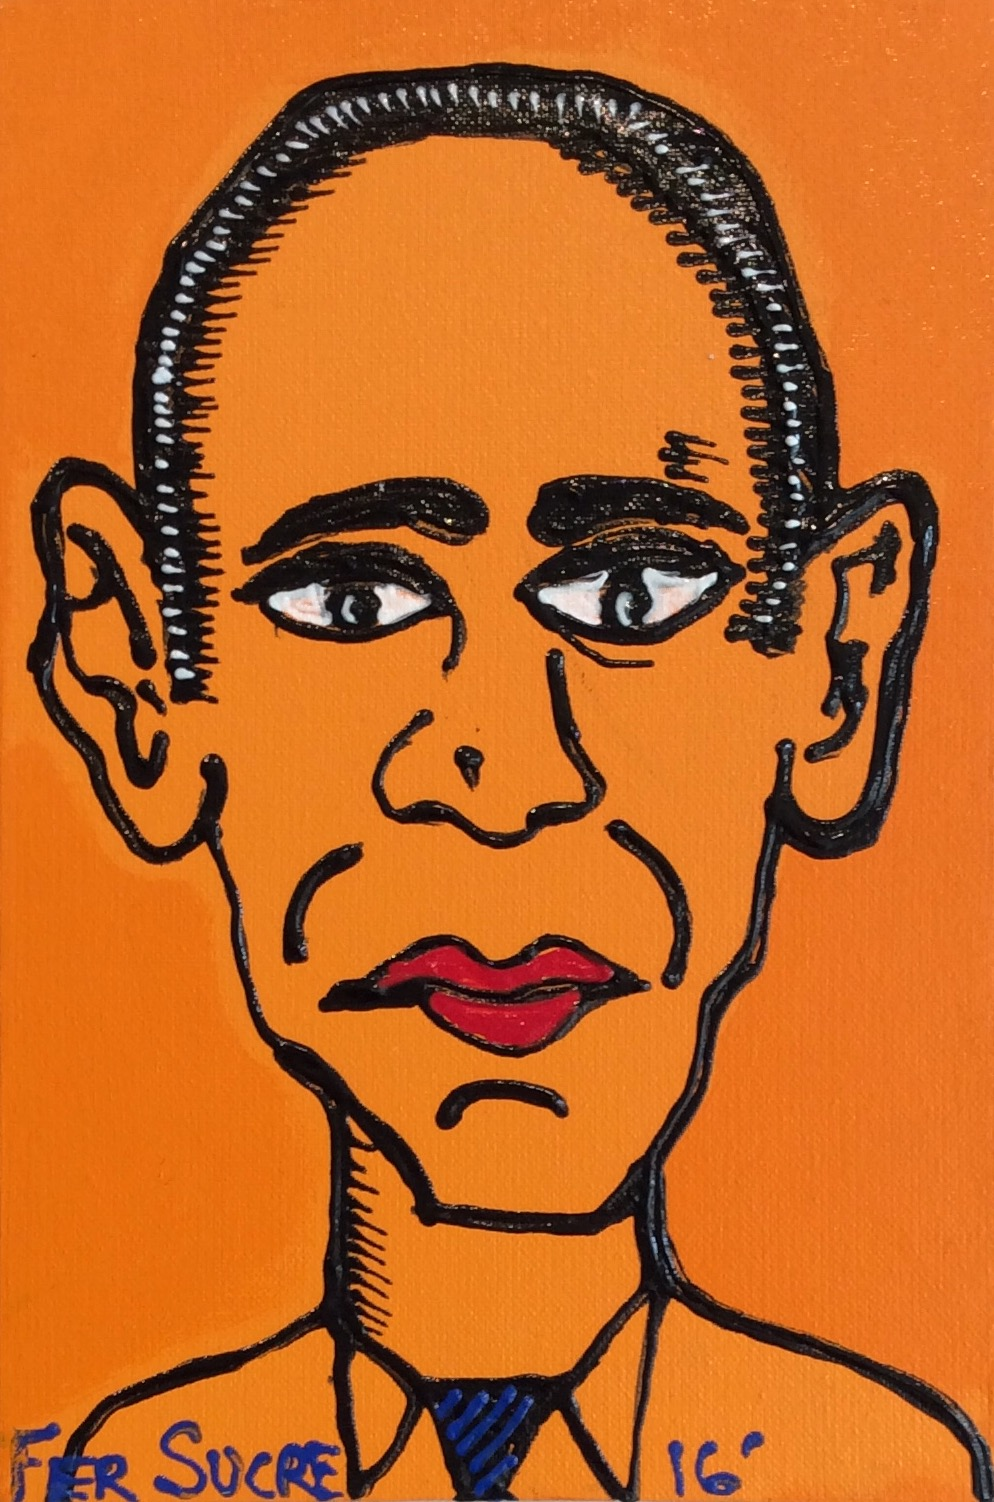 D-Gallerie_Fer Sucre_ Obama_8_x12__Acrylic _ Plastic on Canvas_2016_$350.jpg